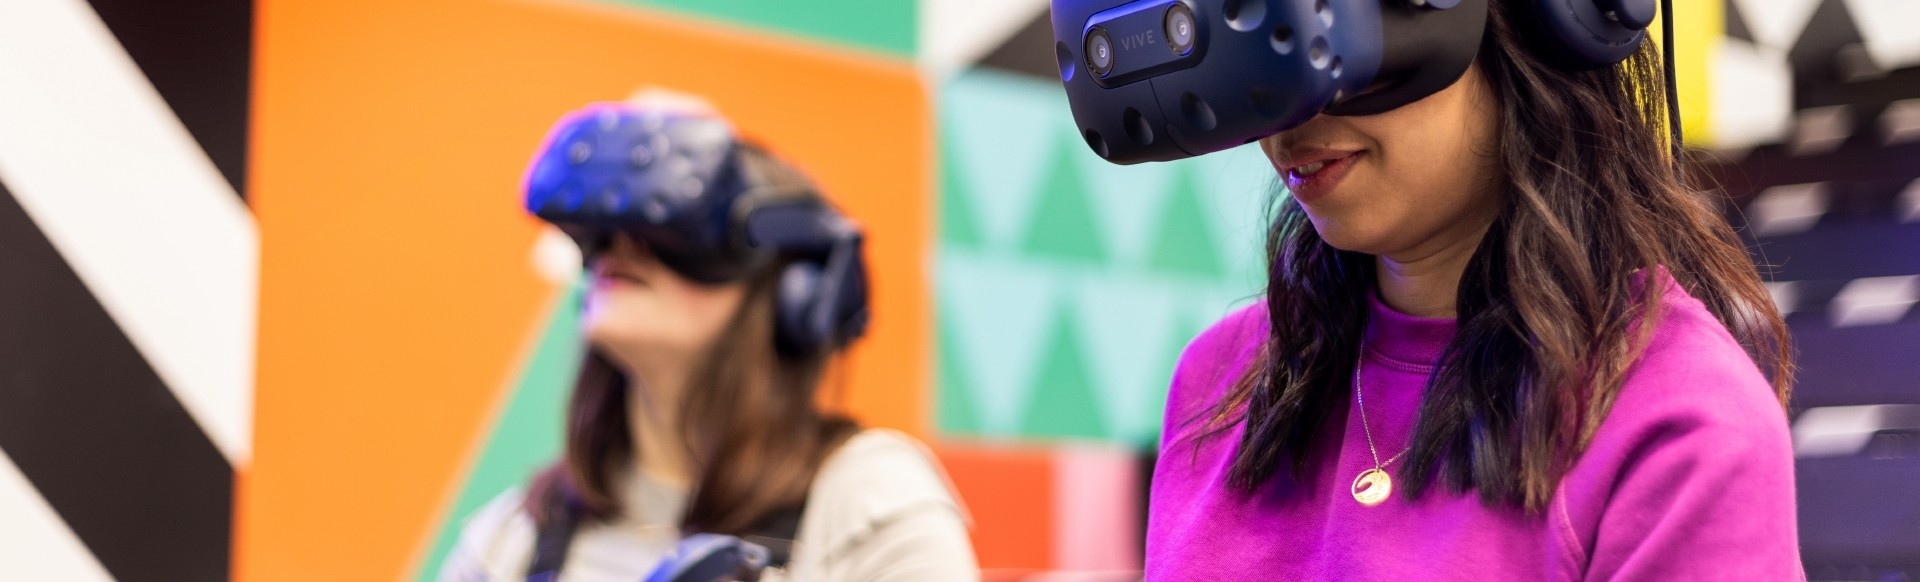 Two young woman are wearing black virtual reality headset, dressed in colourful outfits.